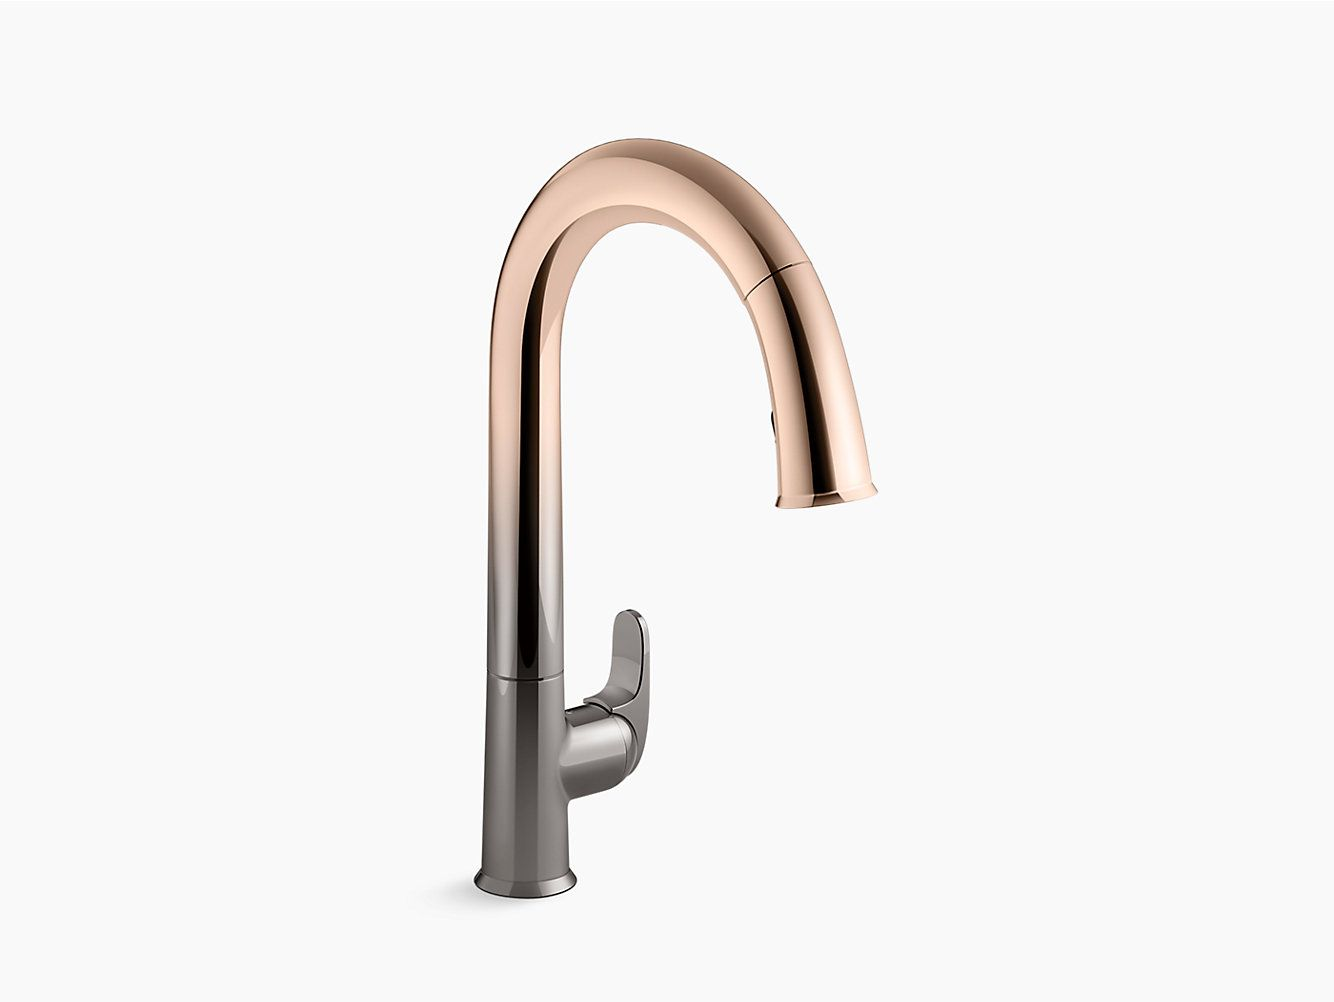 K 72218 Sensate Touchless Pull Down Kitchen Sink Faucet Kohler Kitchen Sink Faucets Touchless Kitchen Faucet Sink Faucets